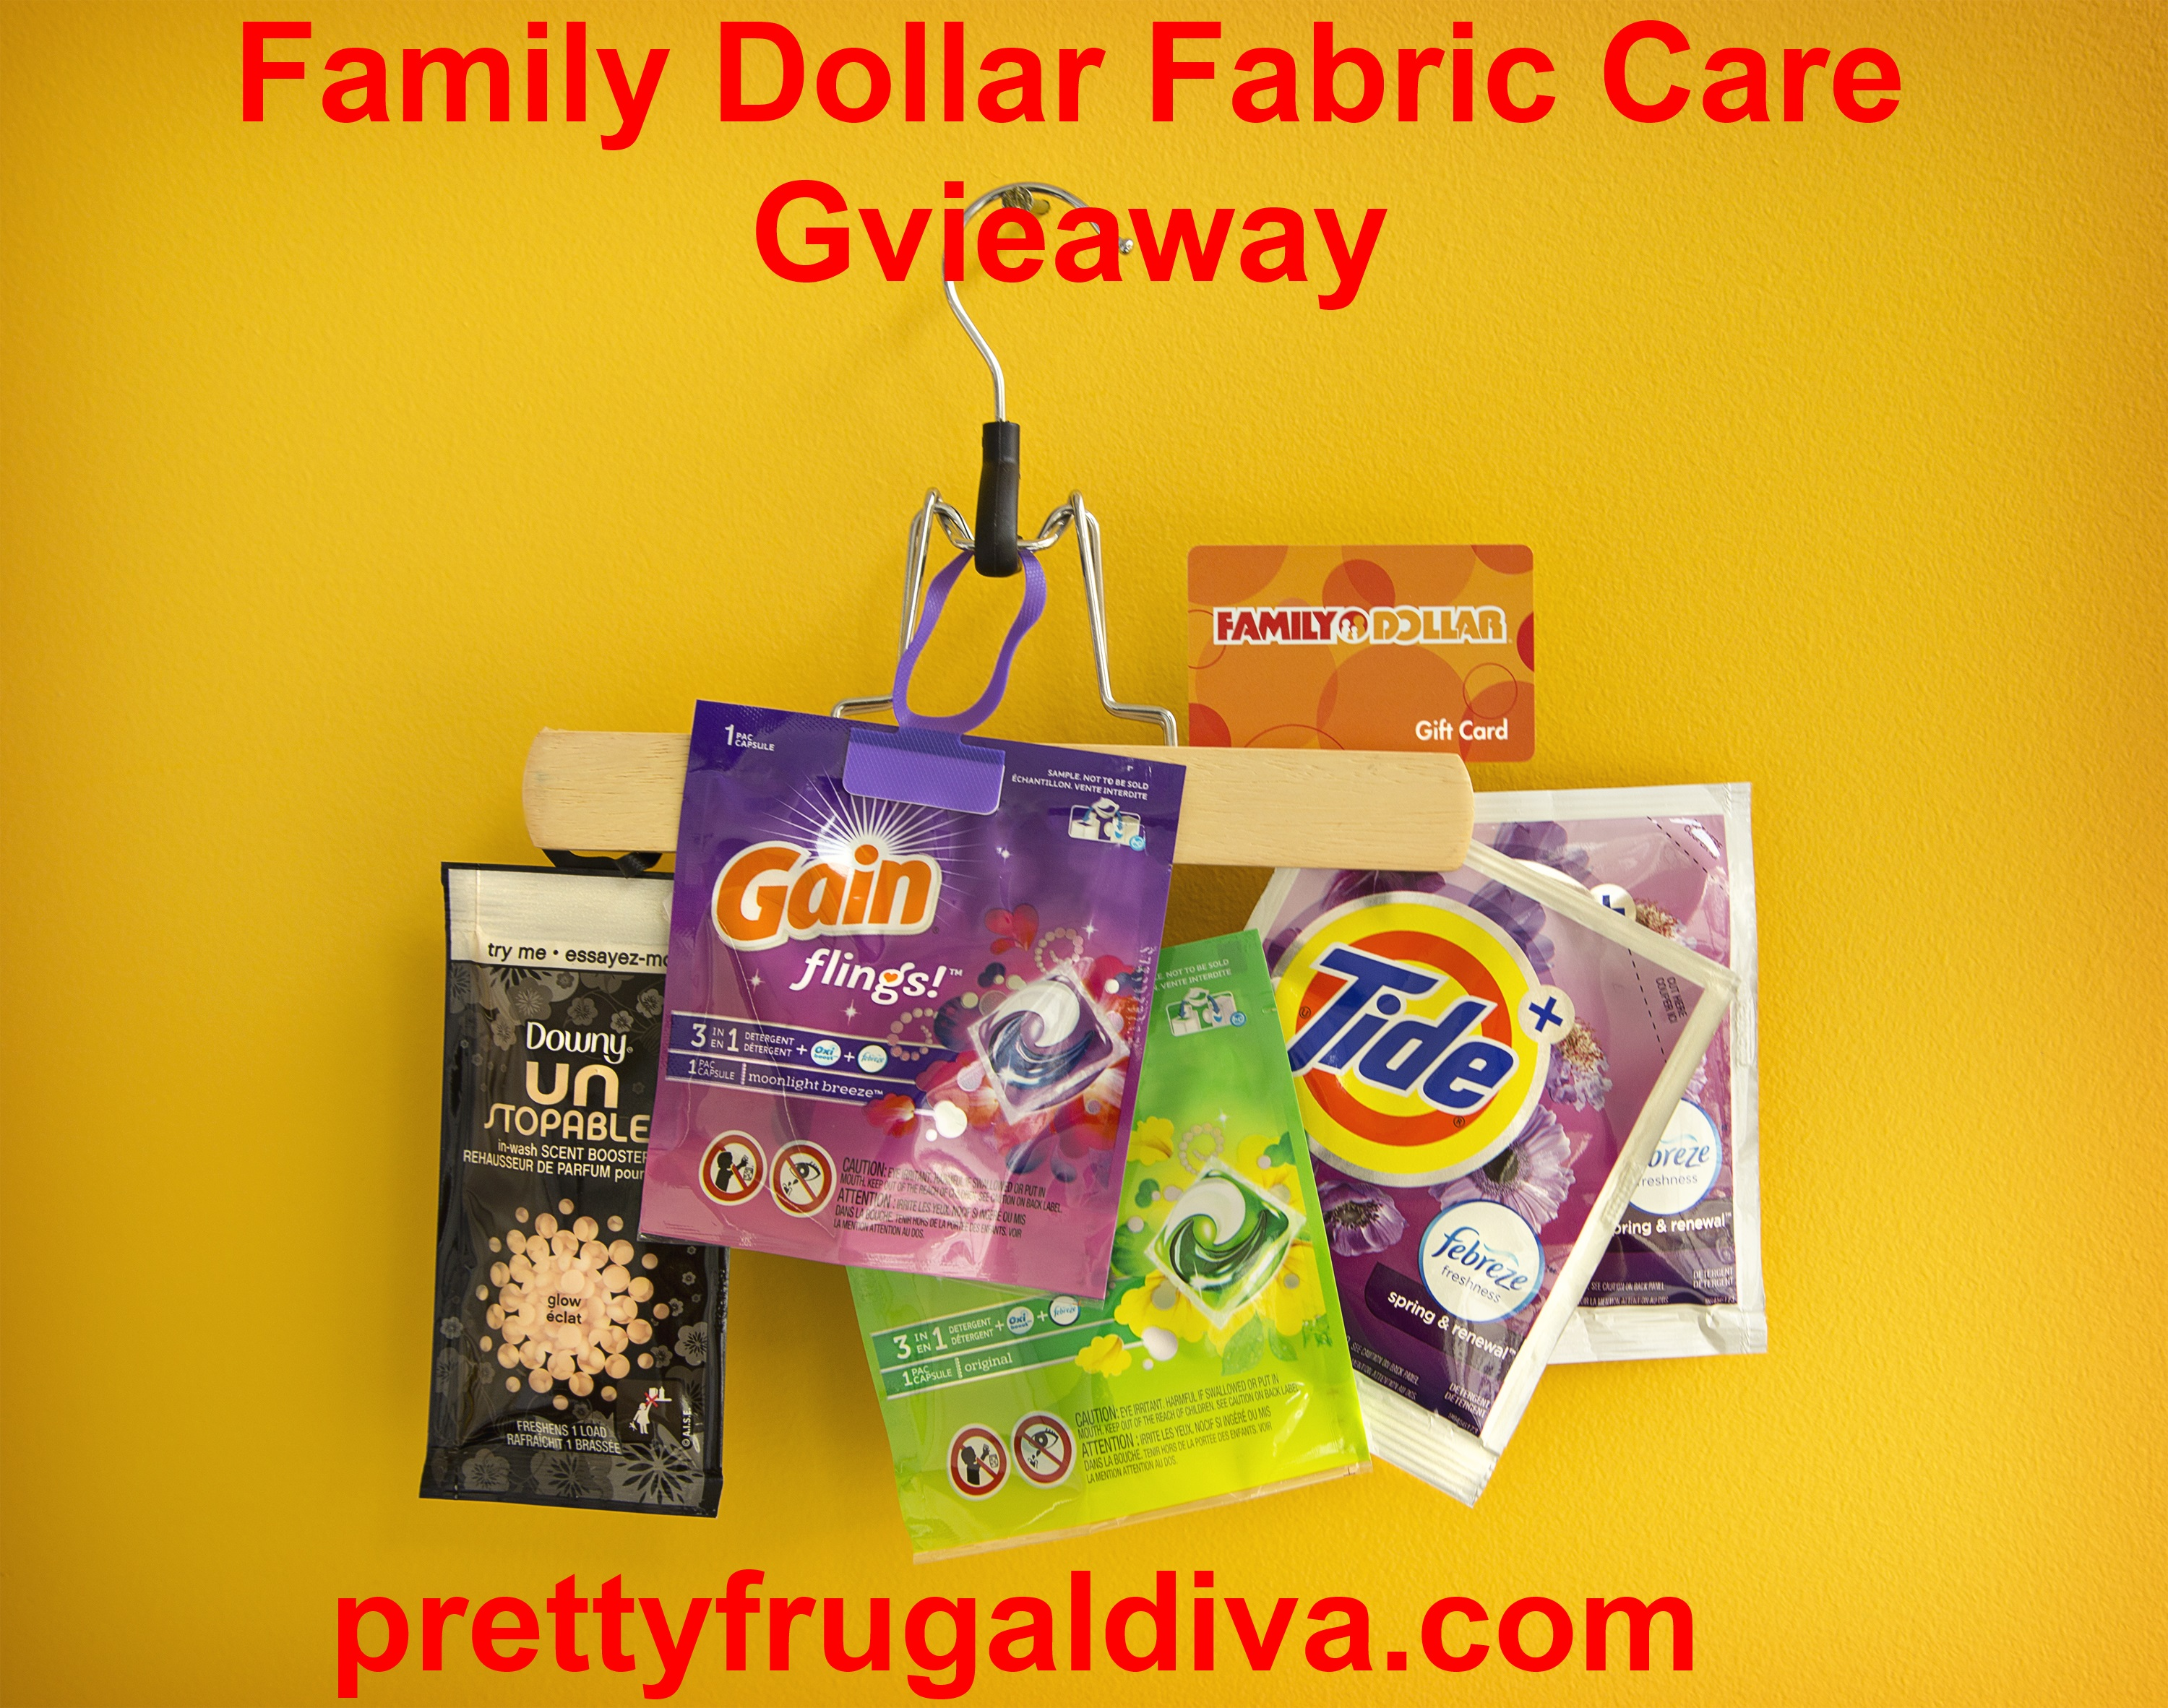 Sponsored Post: Family Dollar Fabric Care Review and Giveaway